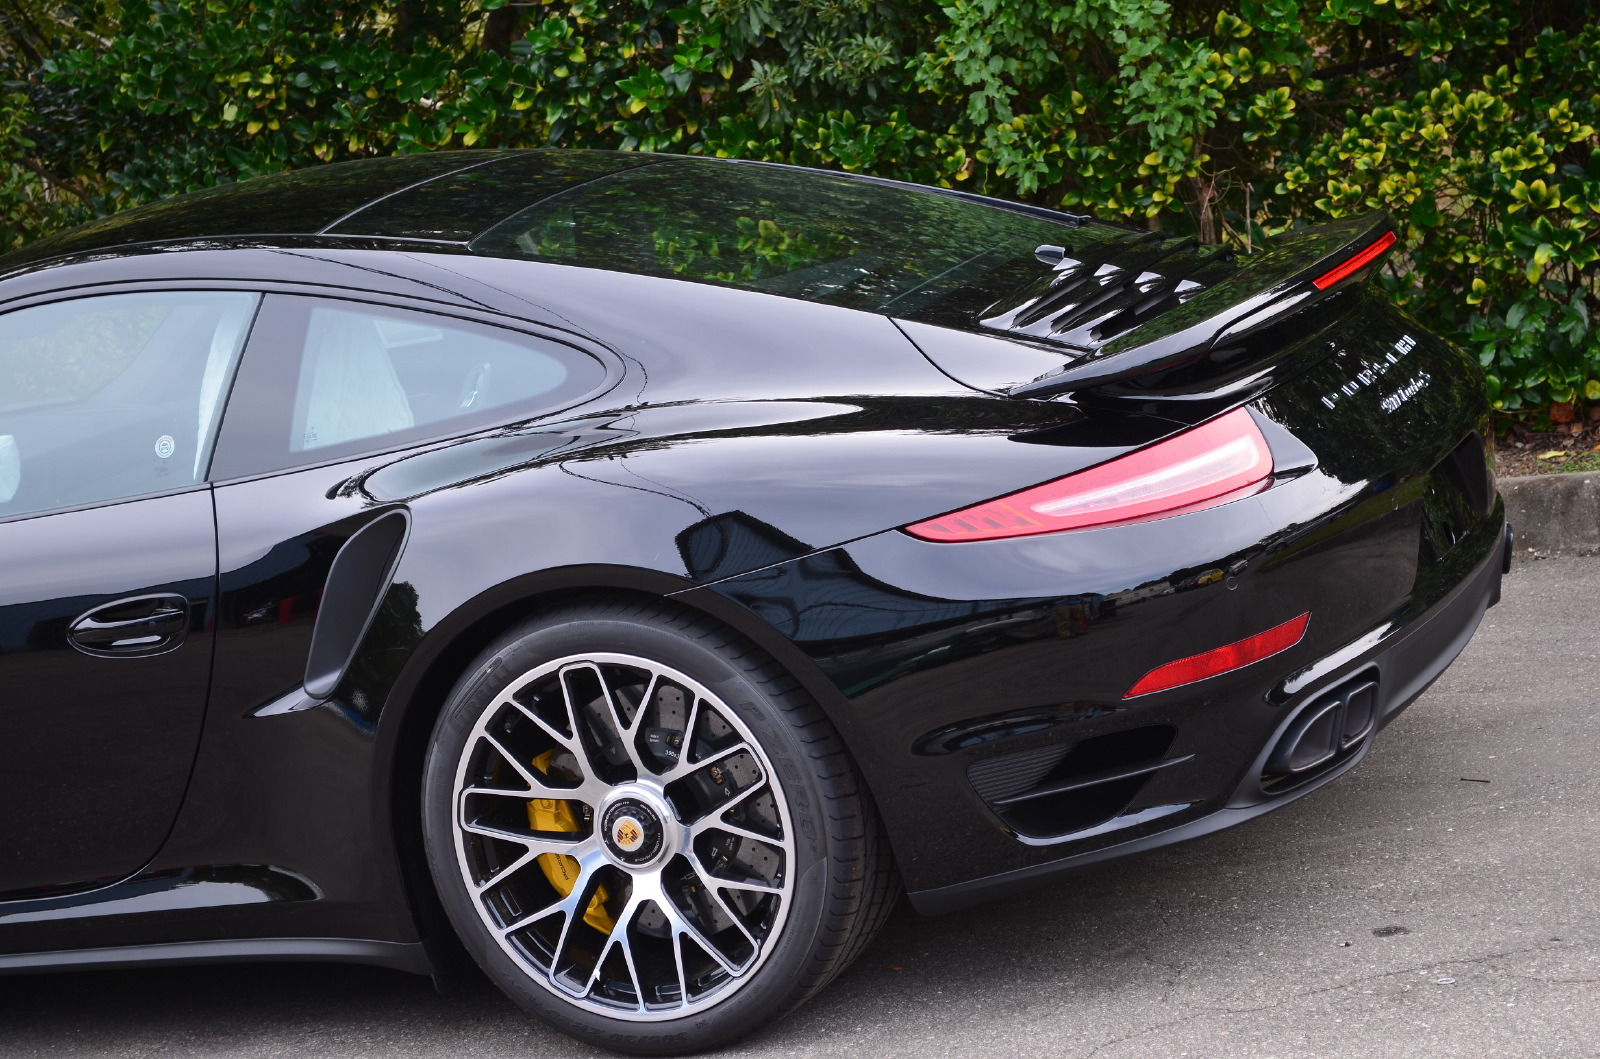 2014 porsche 991 911 turbo s 004 - 911 Porsche 2014 Price